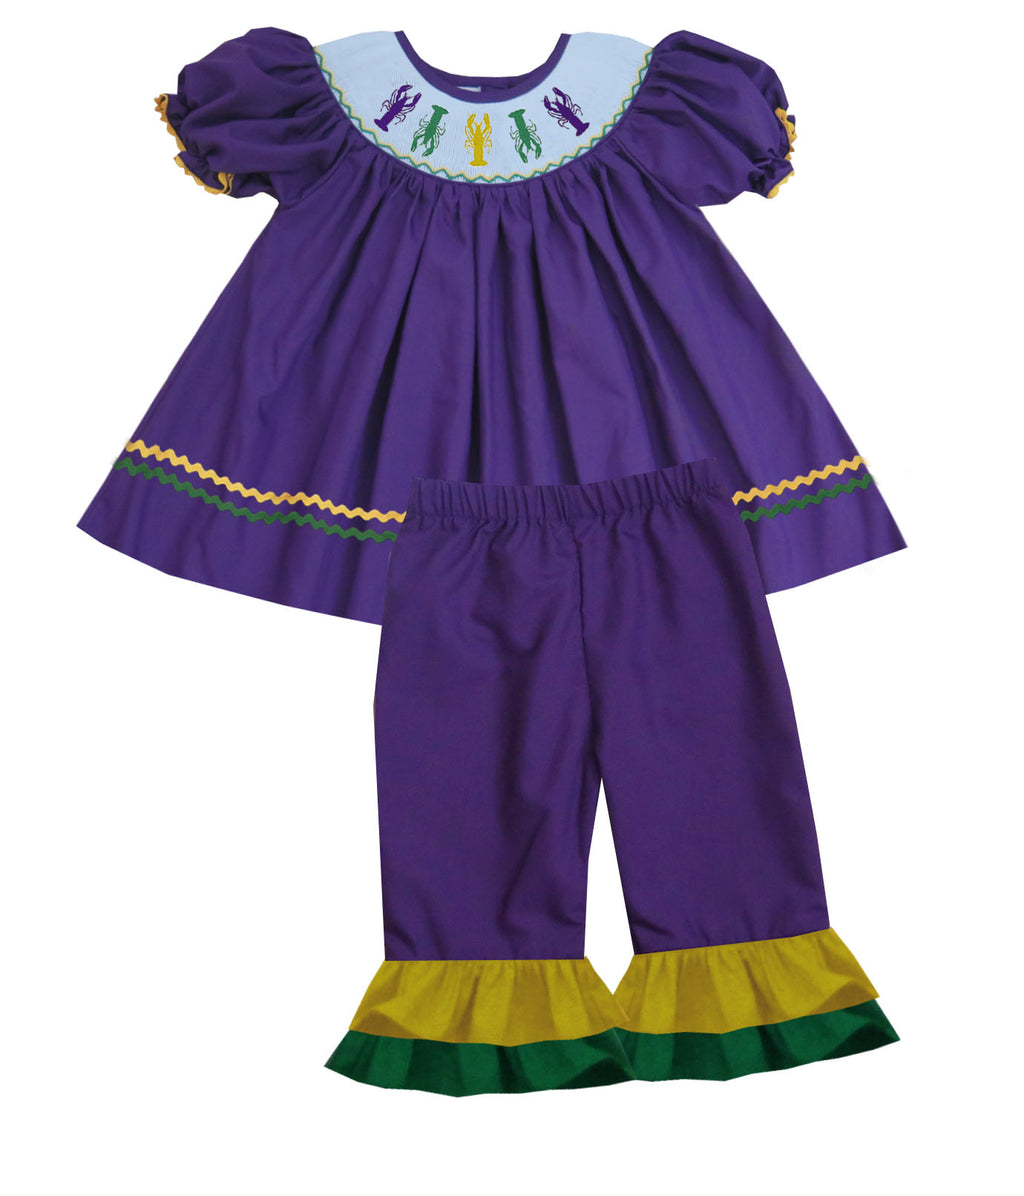 Mardi Gras Crawfish Bishop Style Girls Pants Set